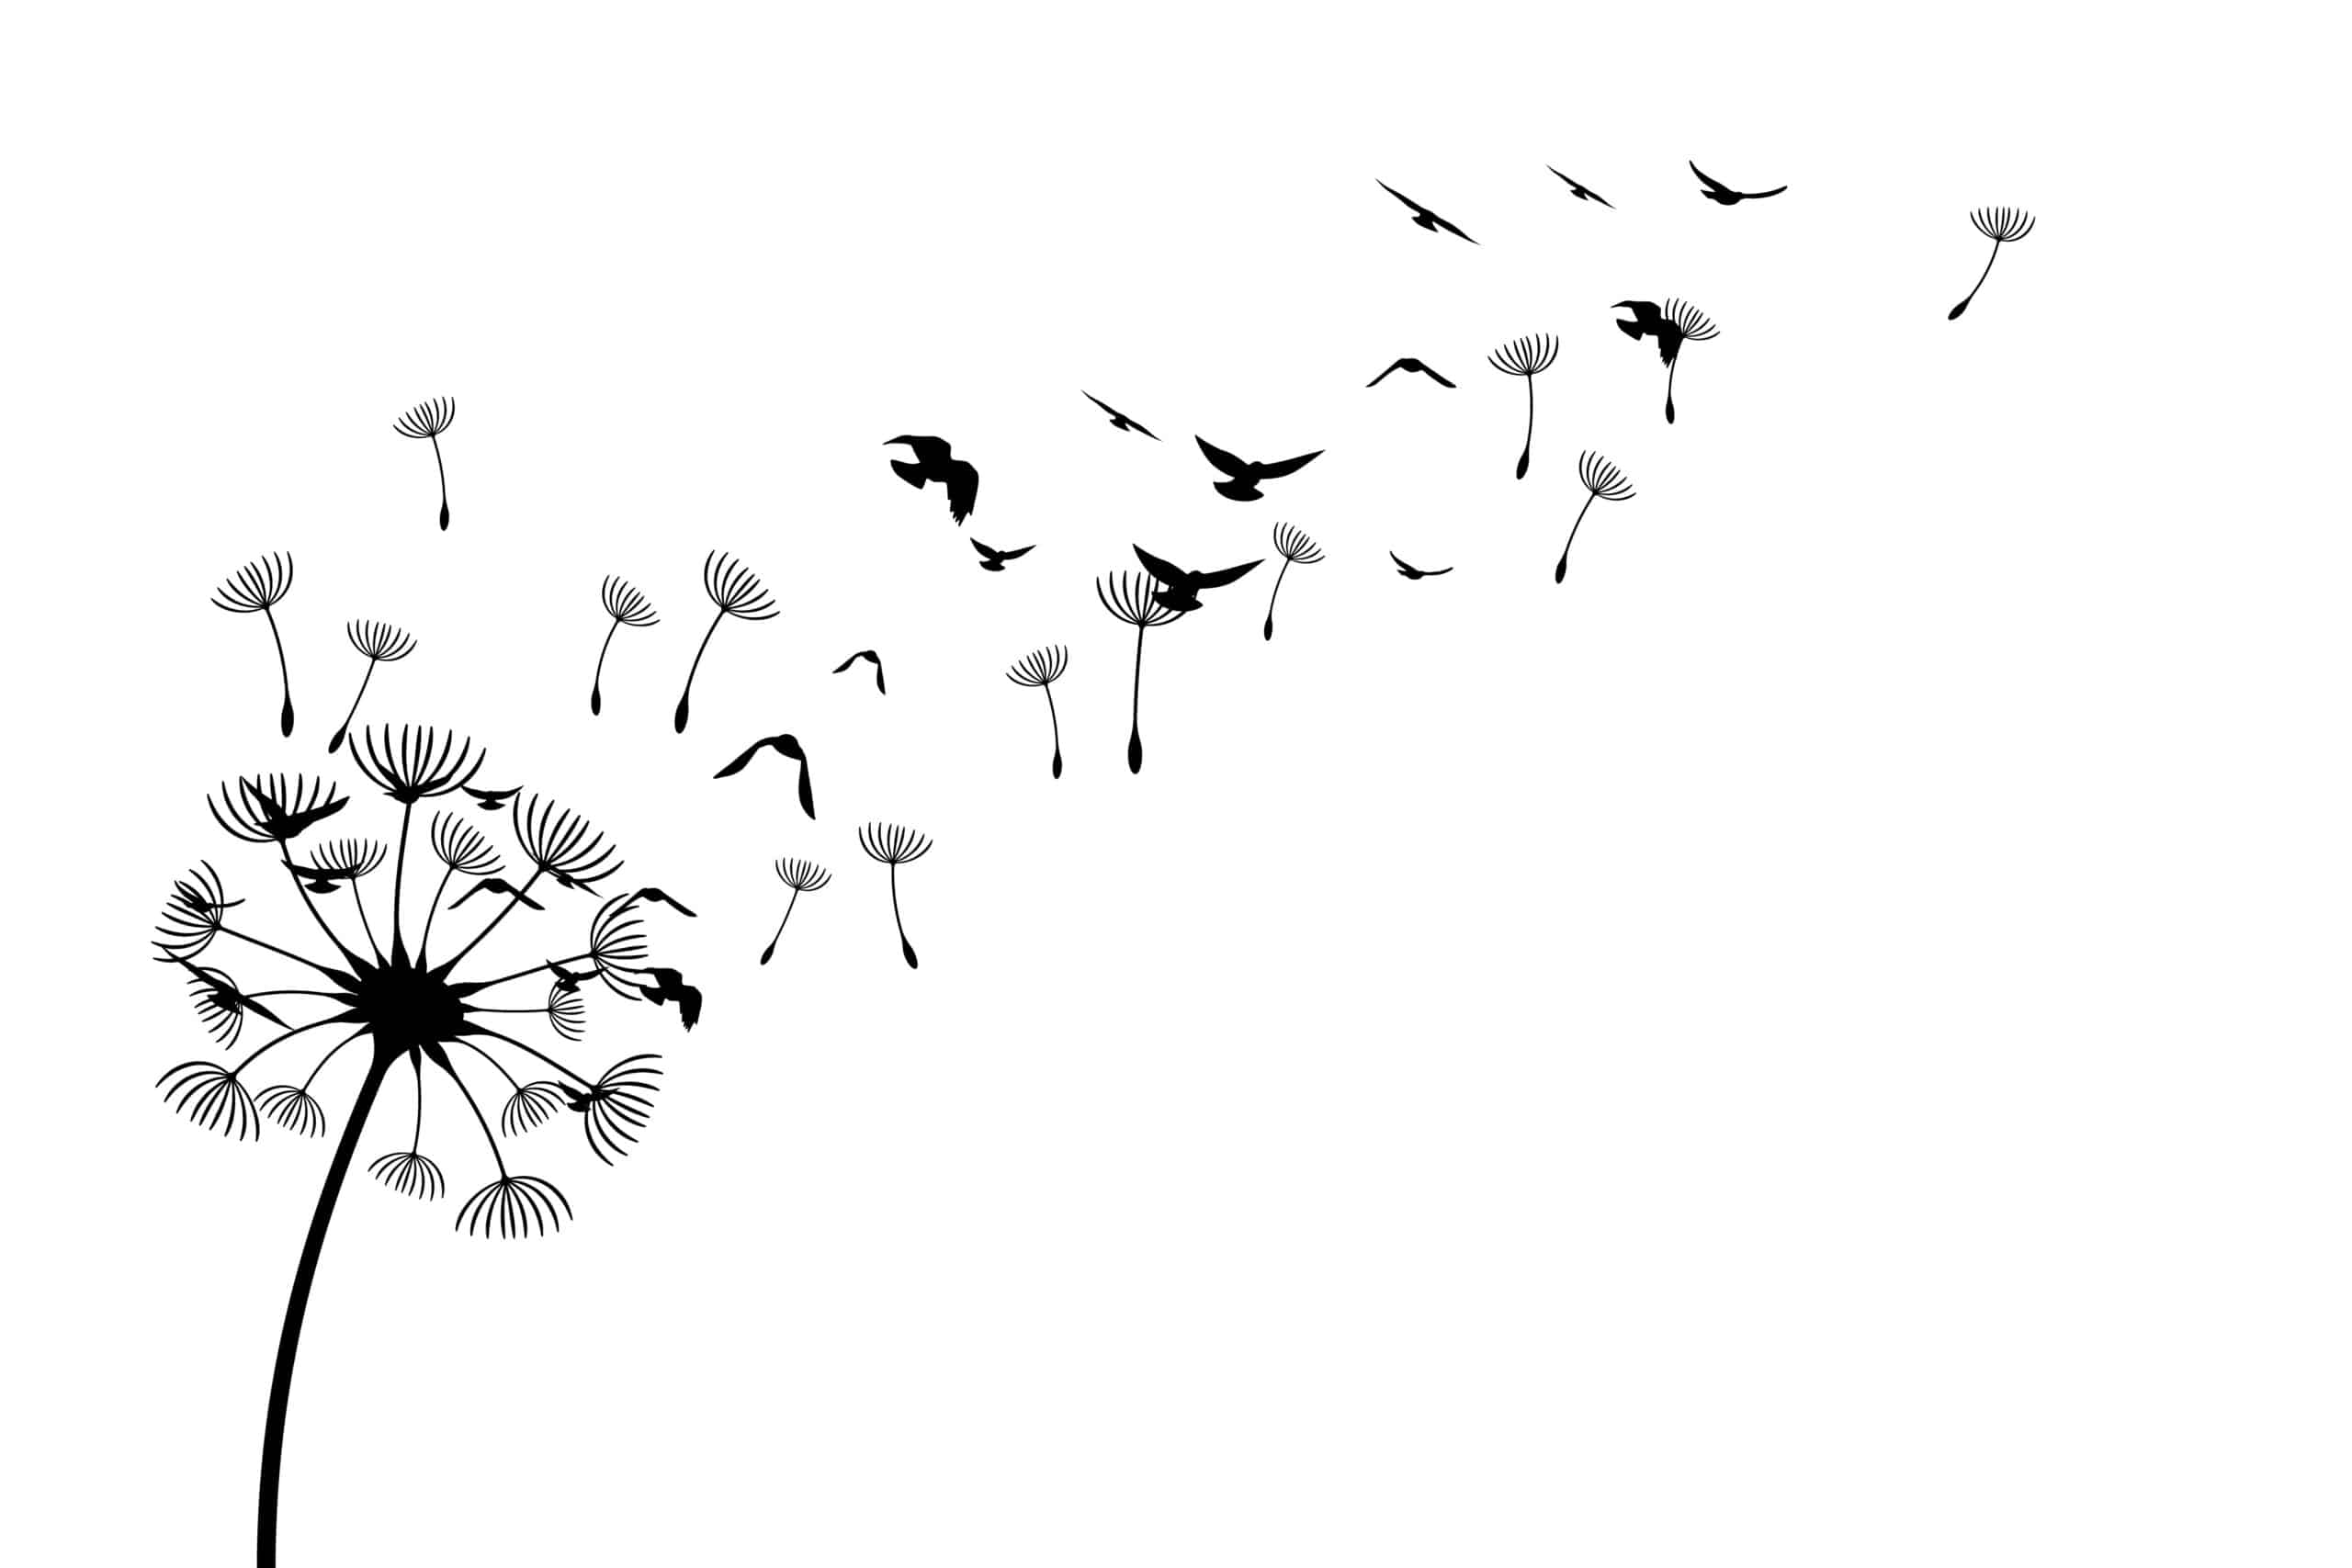 dandelion seeds with birds drawing